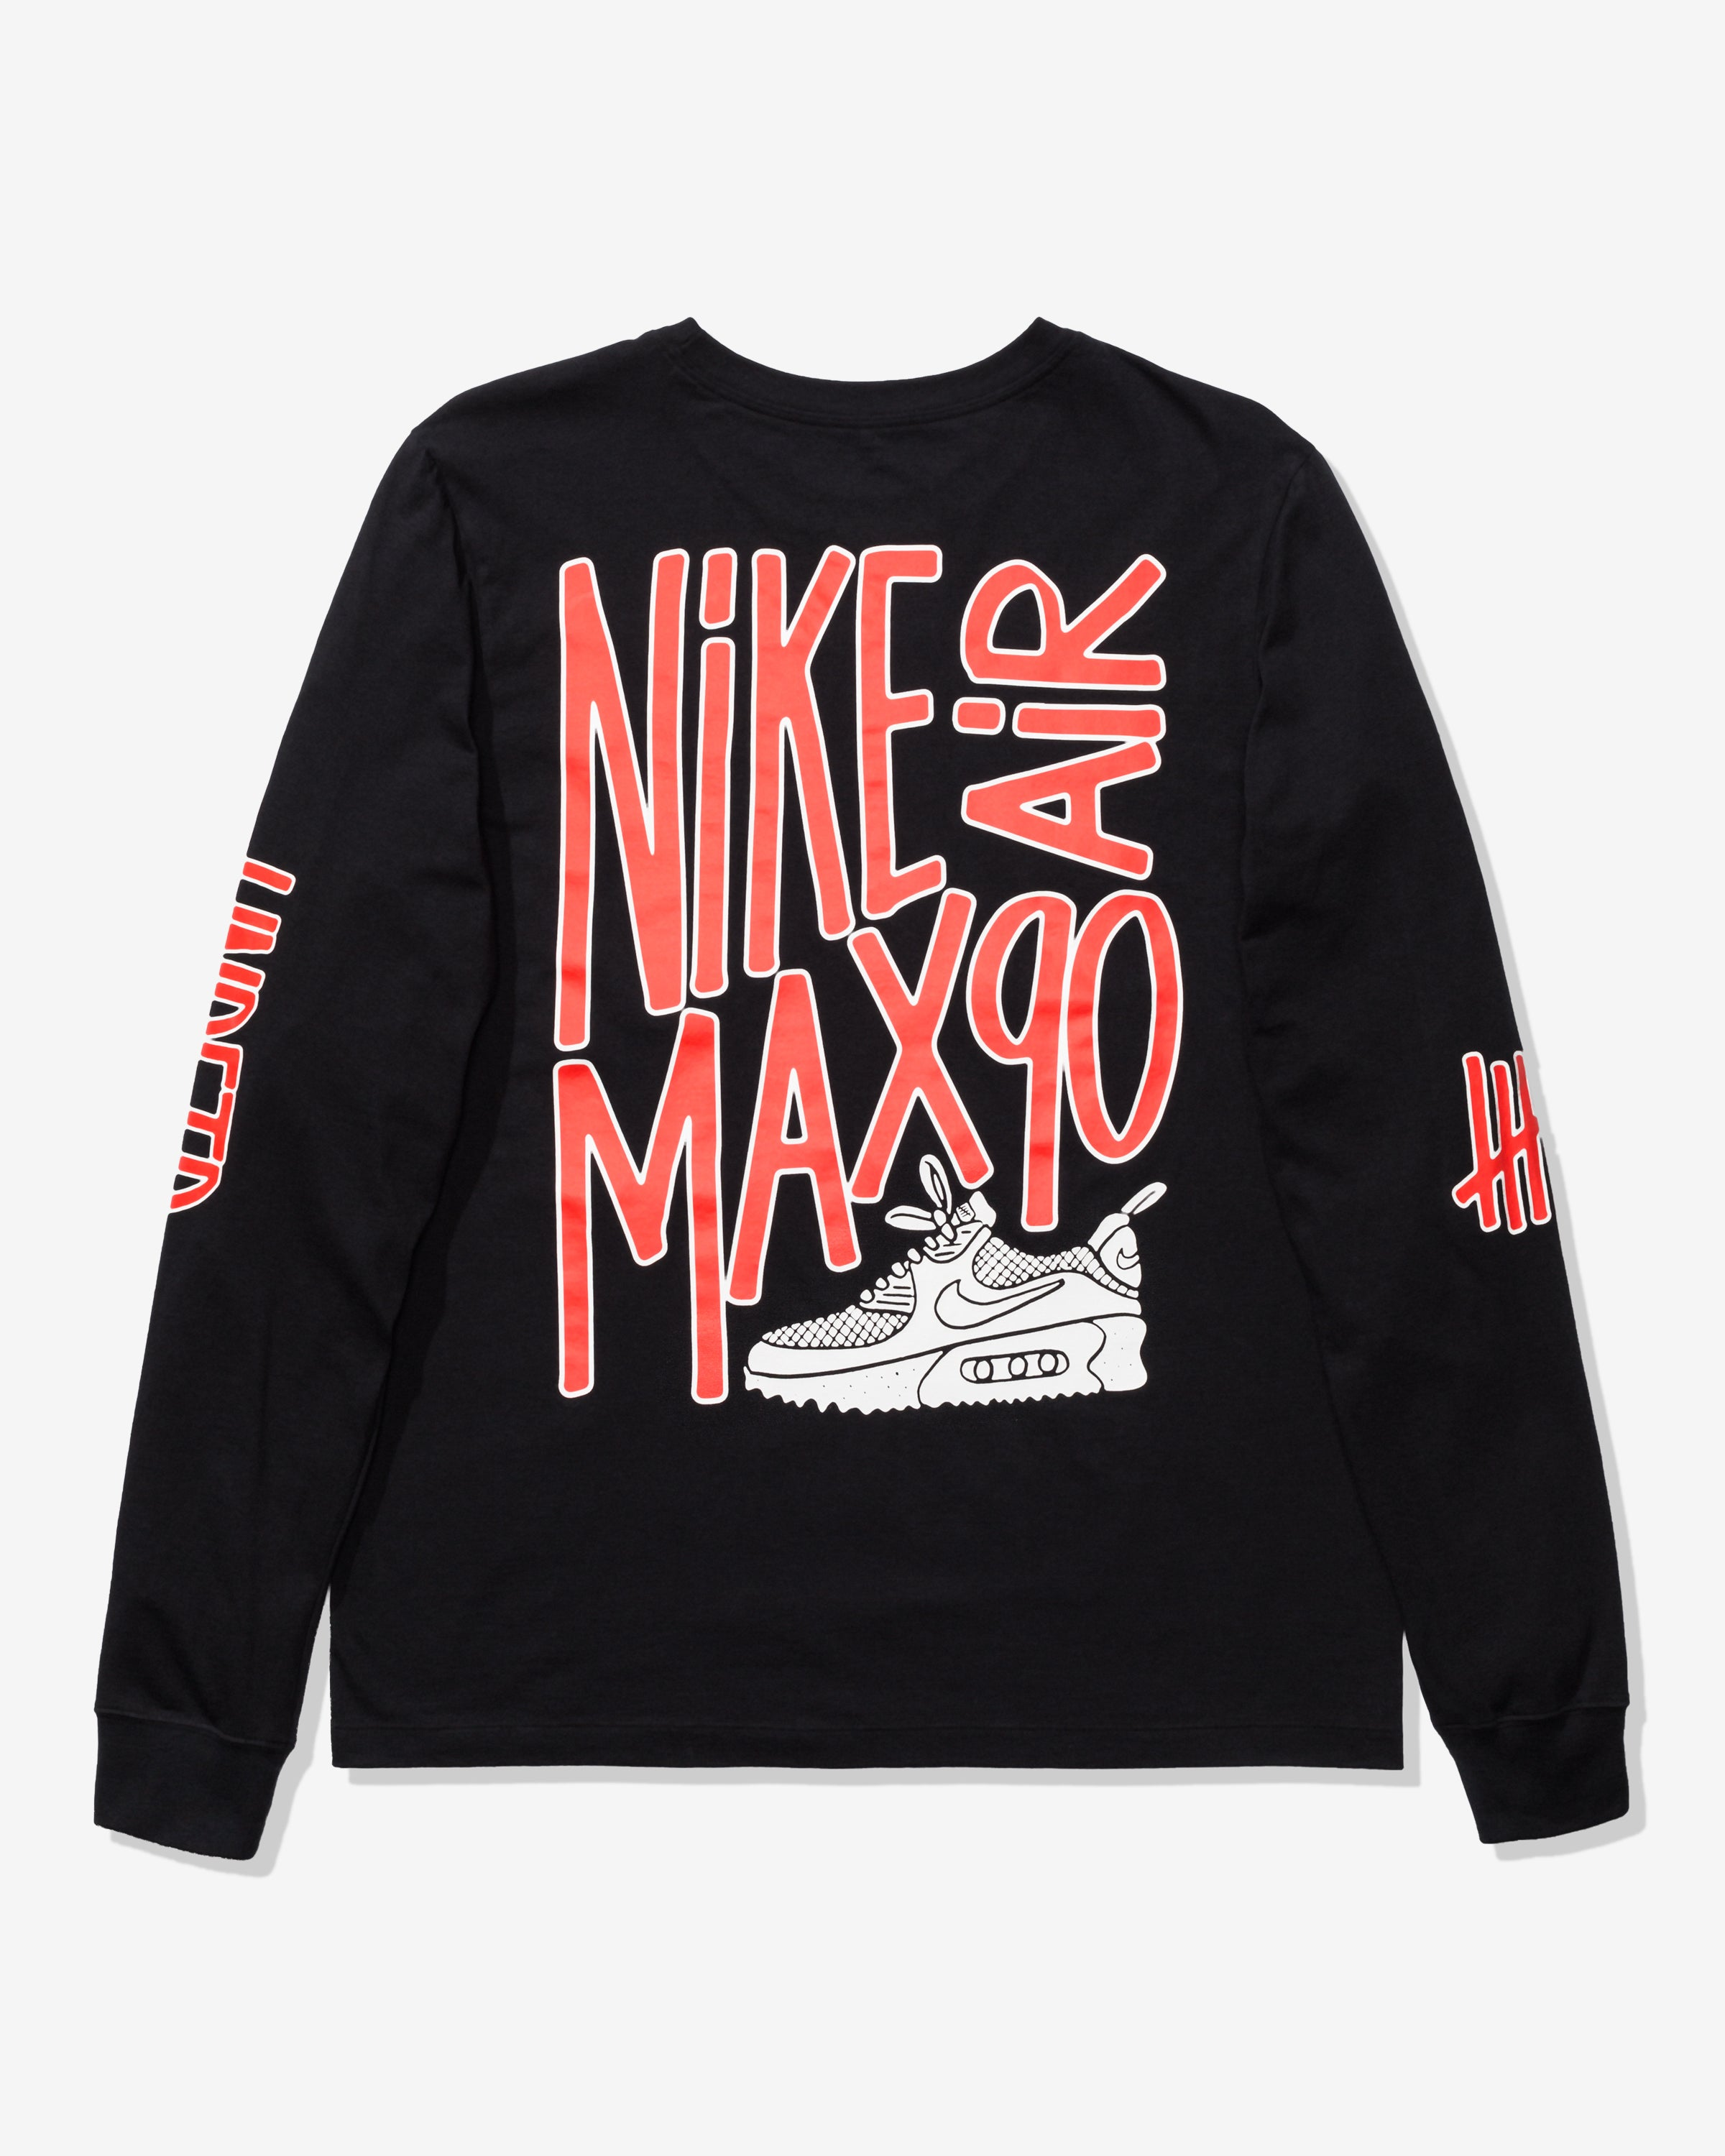 NIKE X UNDEFEATED AIR MAX 90 LS TEE - BLACK